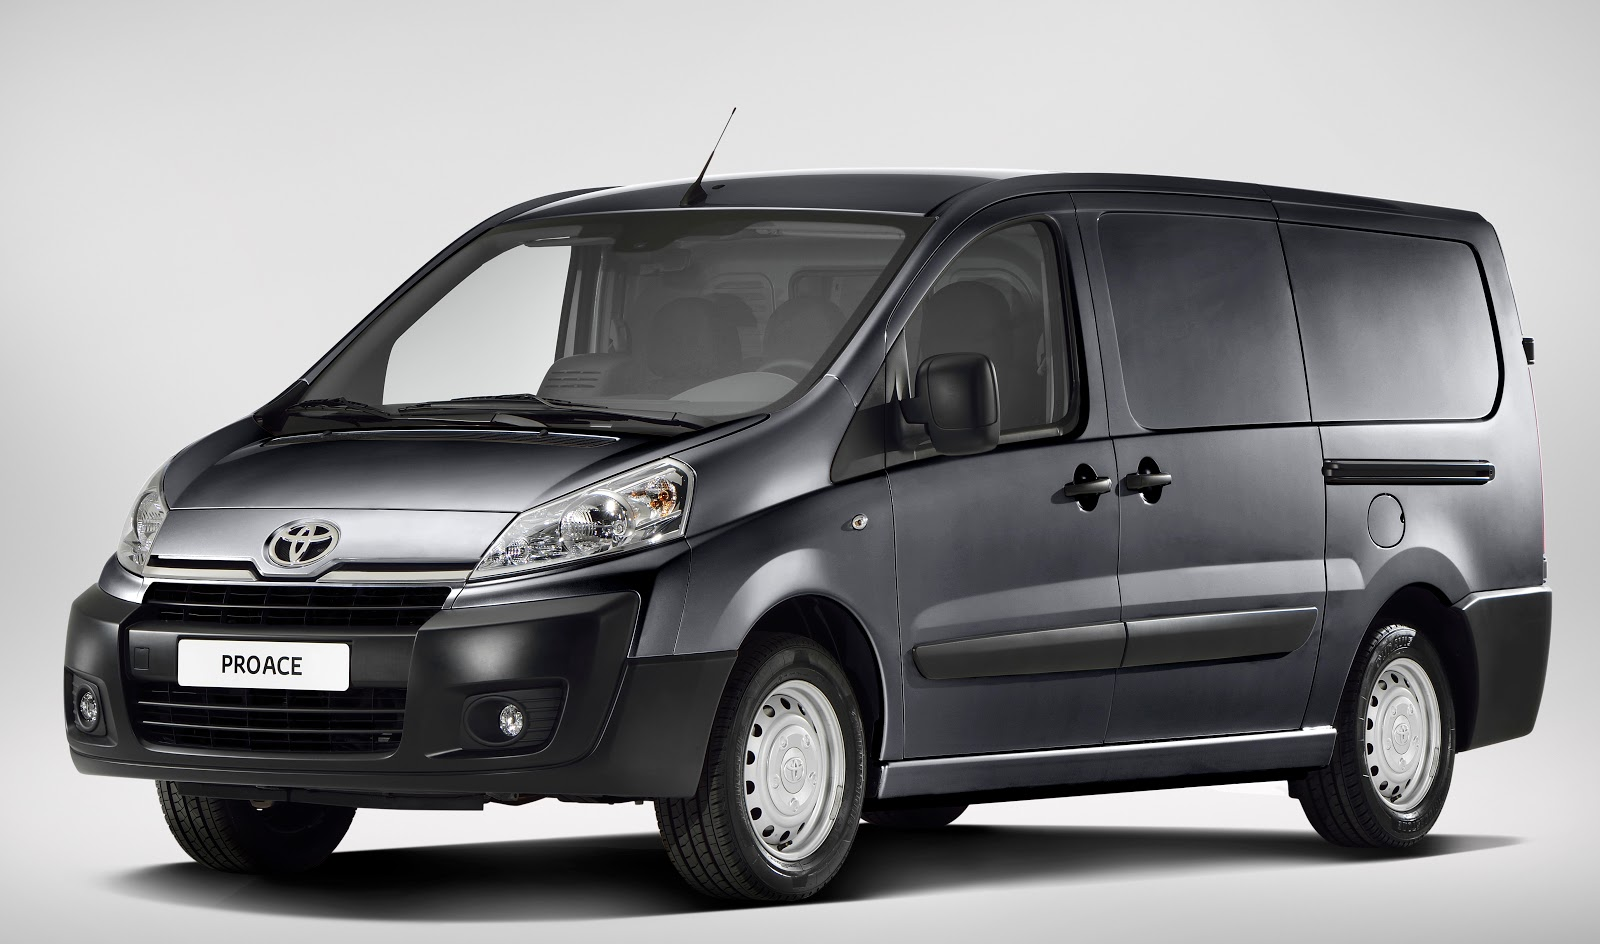 09a7adaac9 Toyota has announced a new light commercial vehicle set to go on sale early  next year in Europe